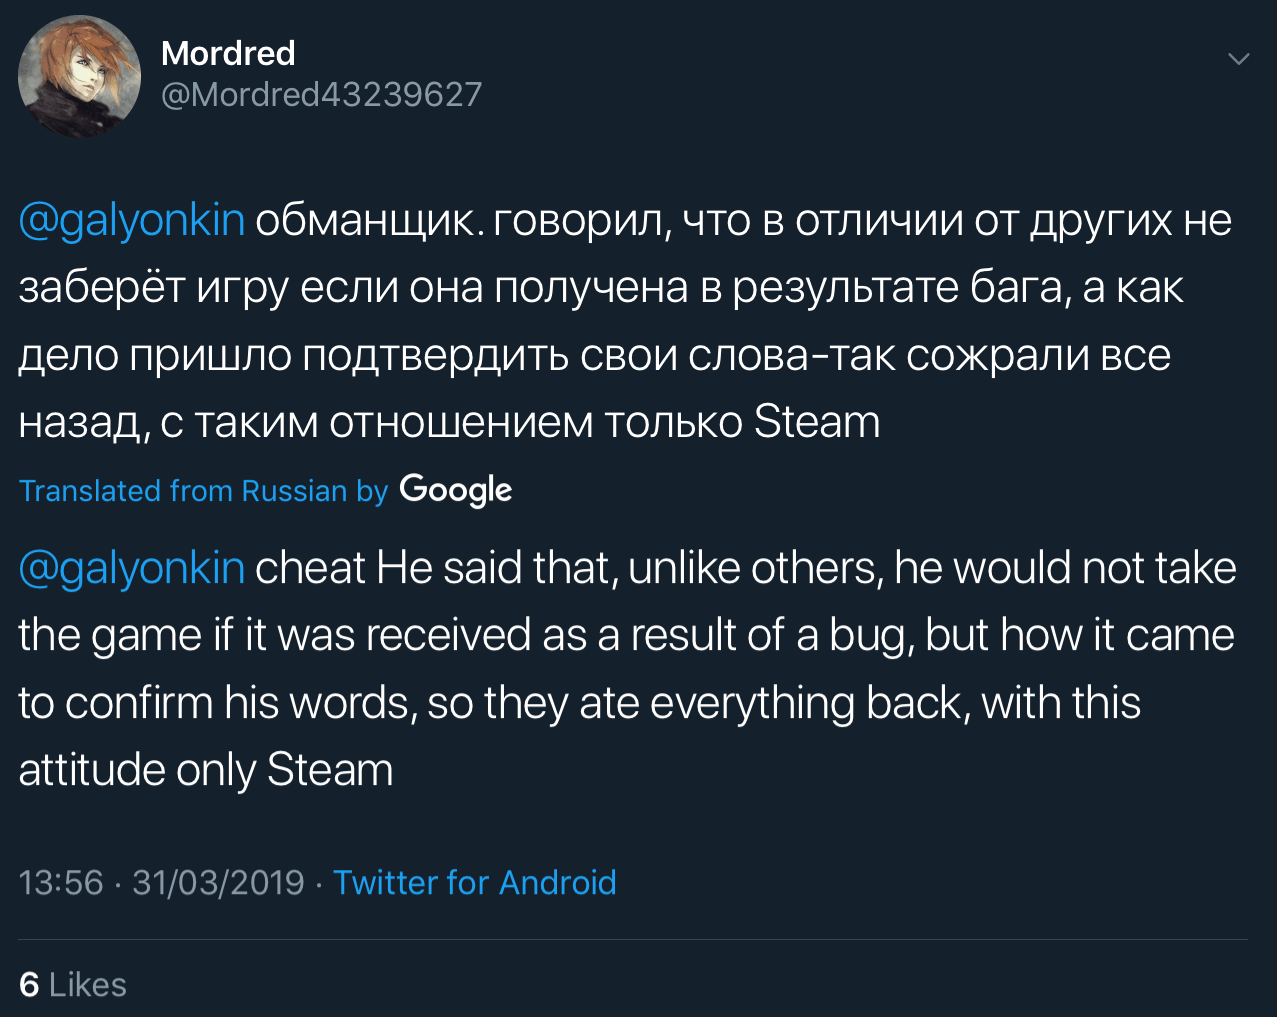 A Twitter user highlighting how Sergey Galyonkin said he would not take back games that were received as a result of a bug yet this is what Epic Games are doing with Detroit become human.